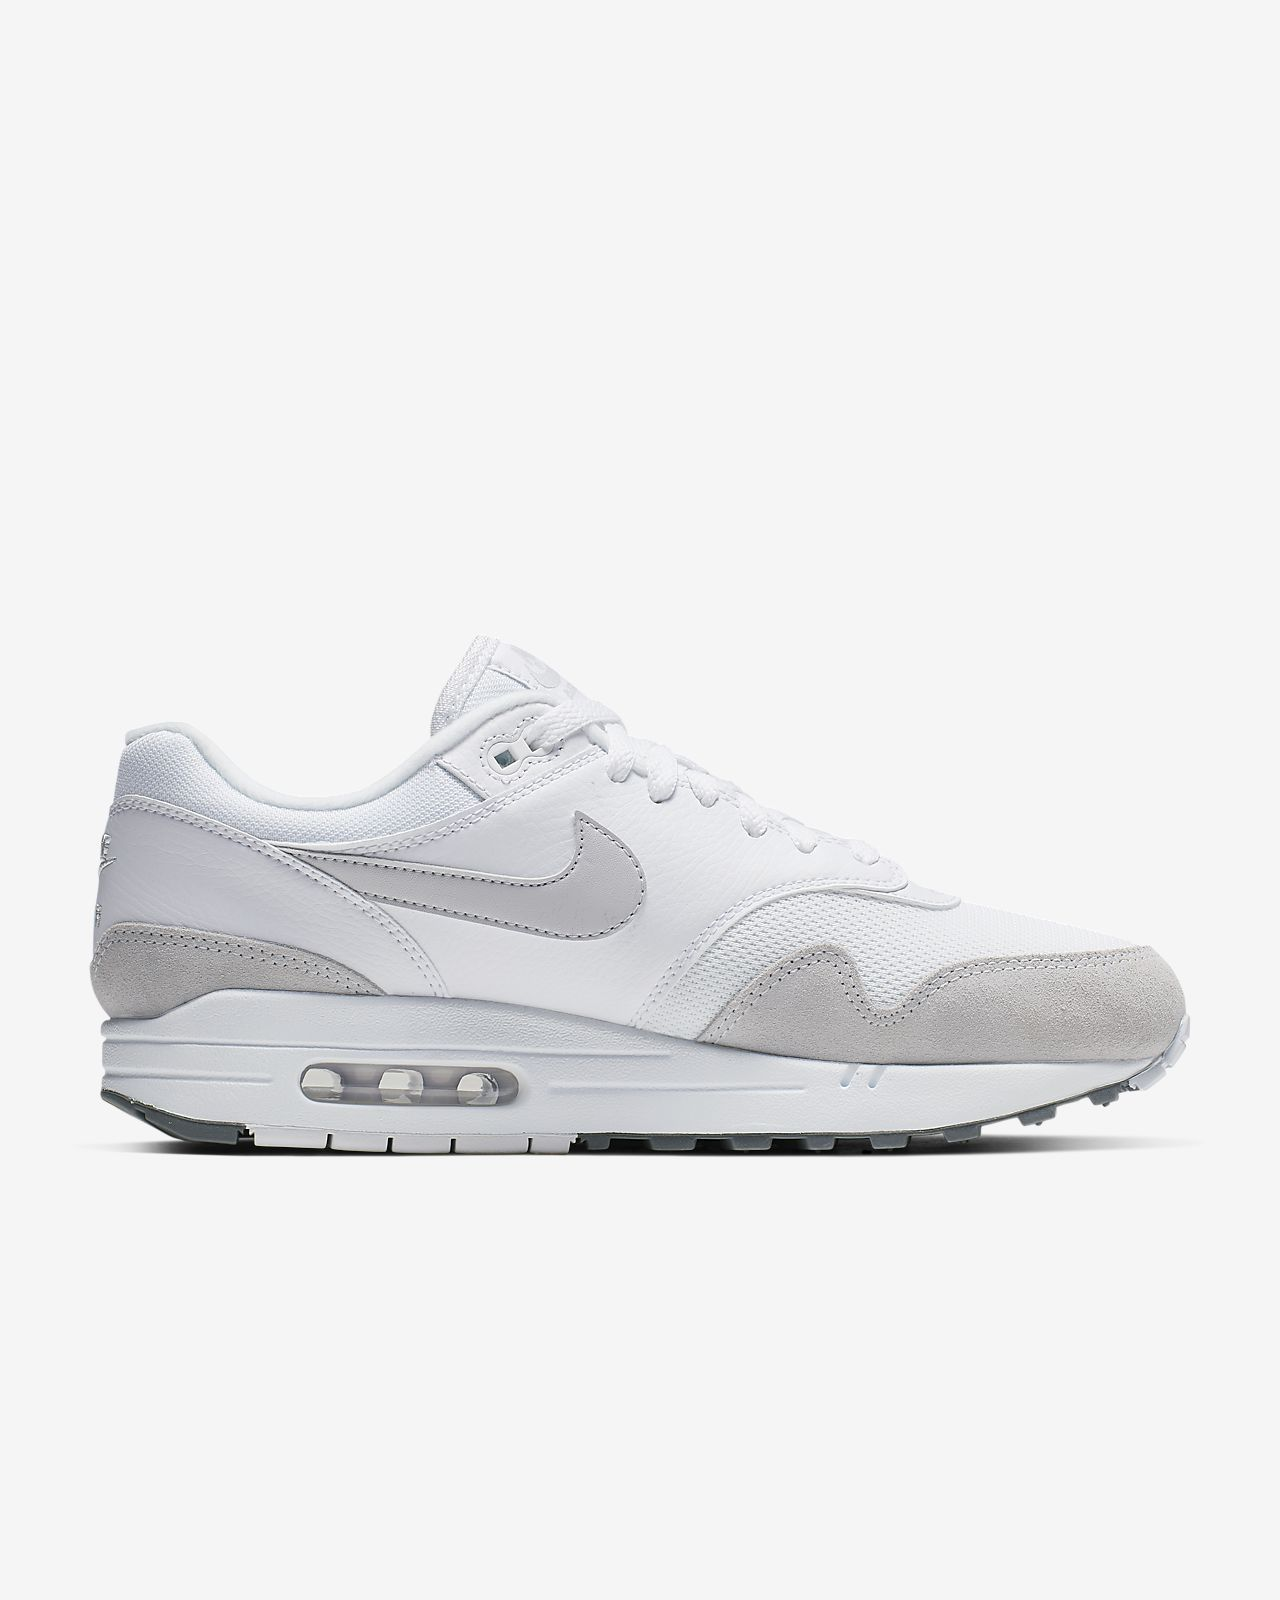 6b1f240f6e Nike Air Max 1 Men's Shoe. Nike.com